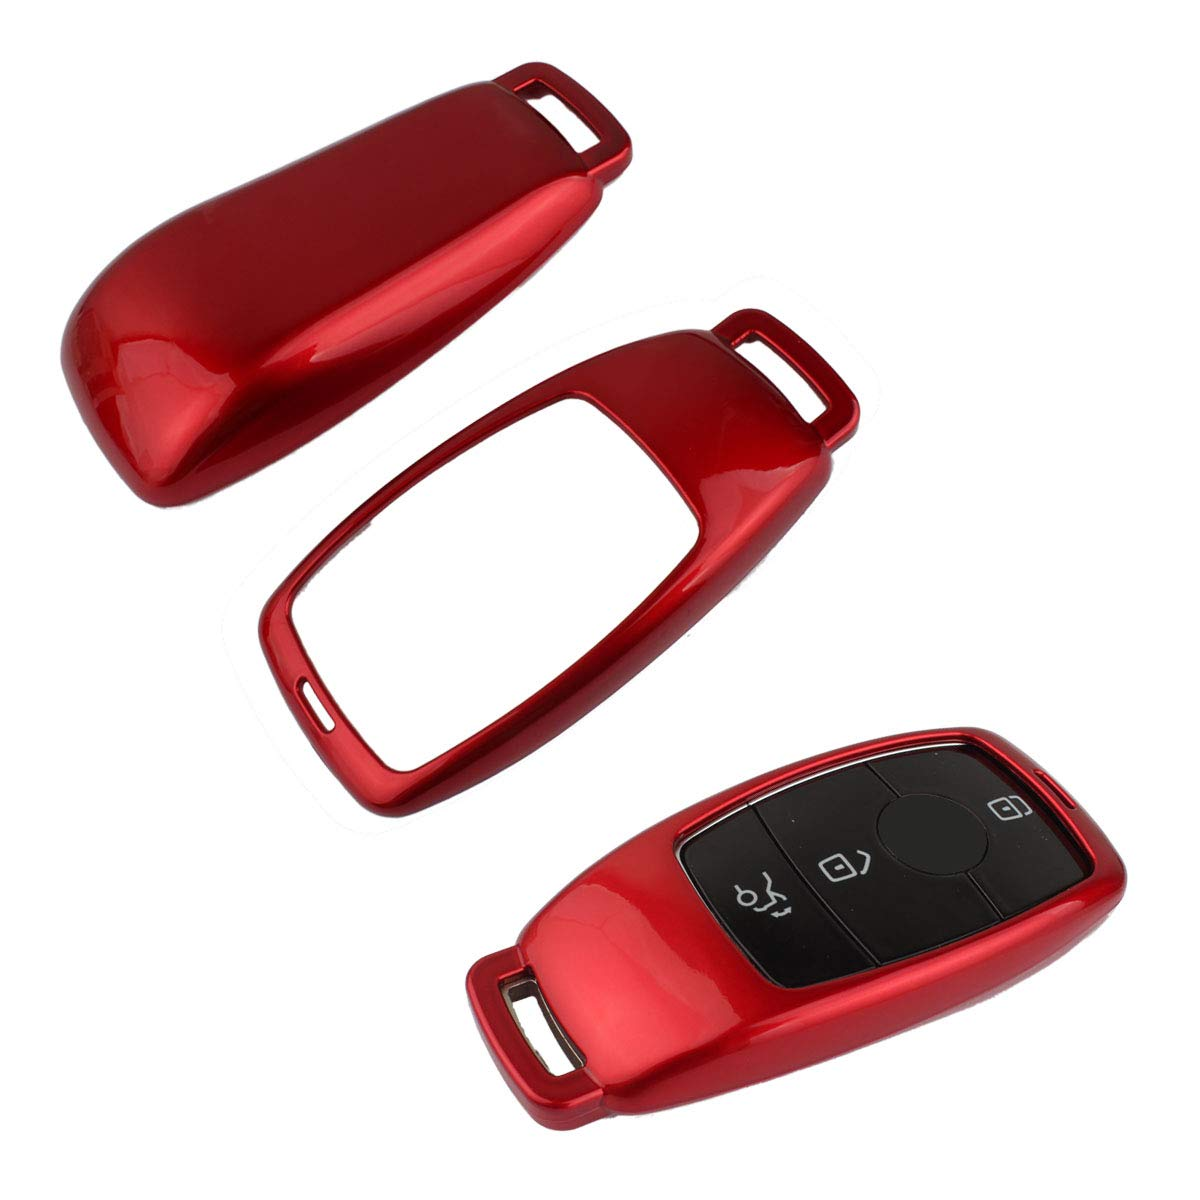 TOMALL Key Cover for 2016 up Mercedes Benz New E Class / 2018 up Mercedes Benz New S Class Smart Remote Key Fob Cover Shell Black